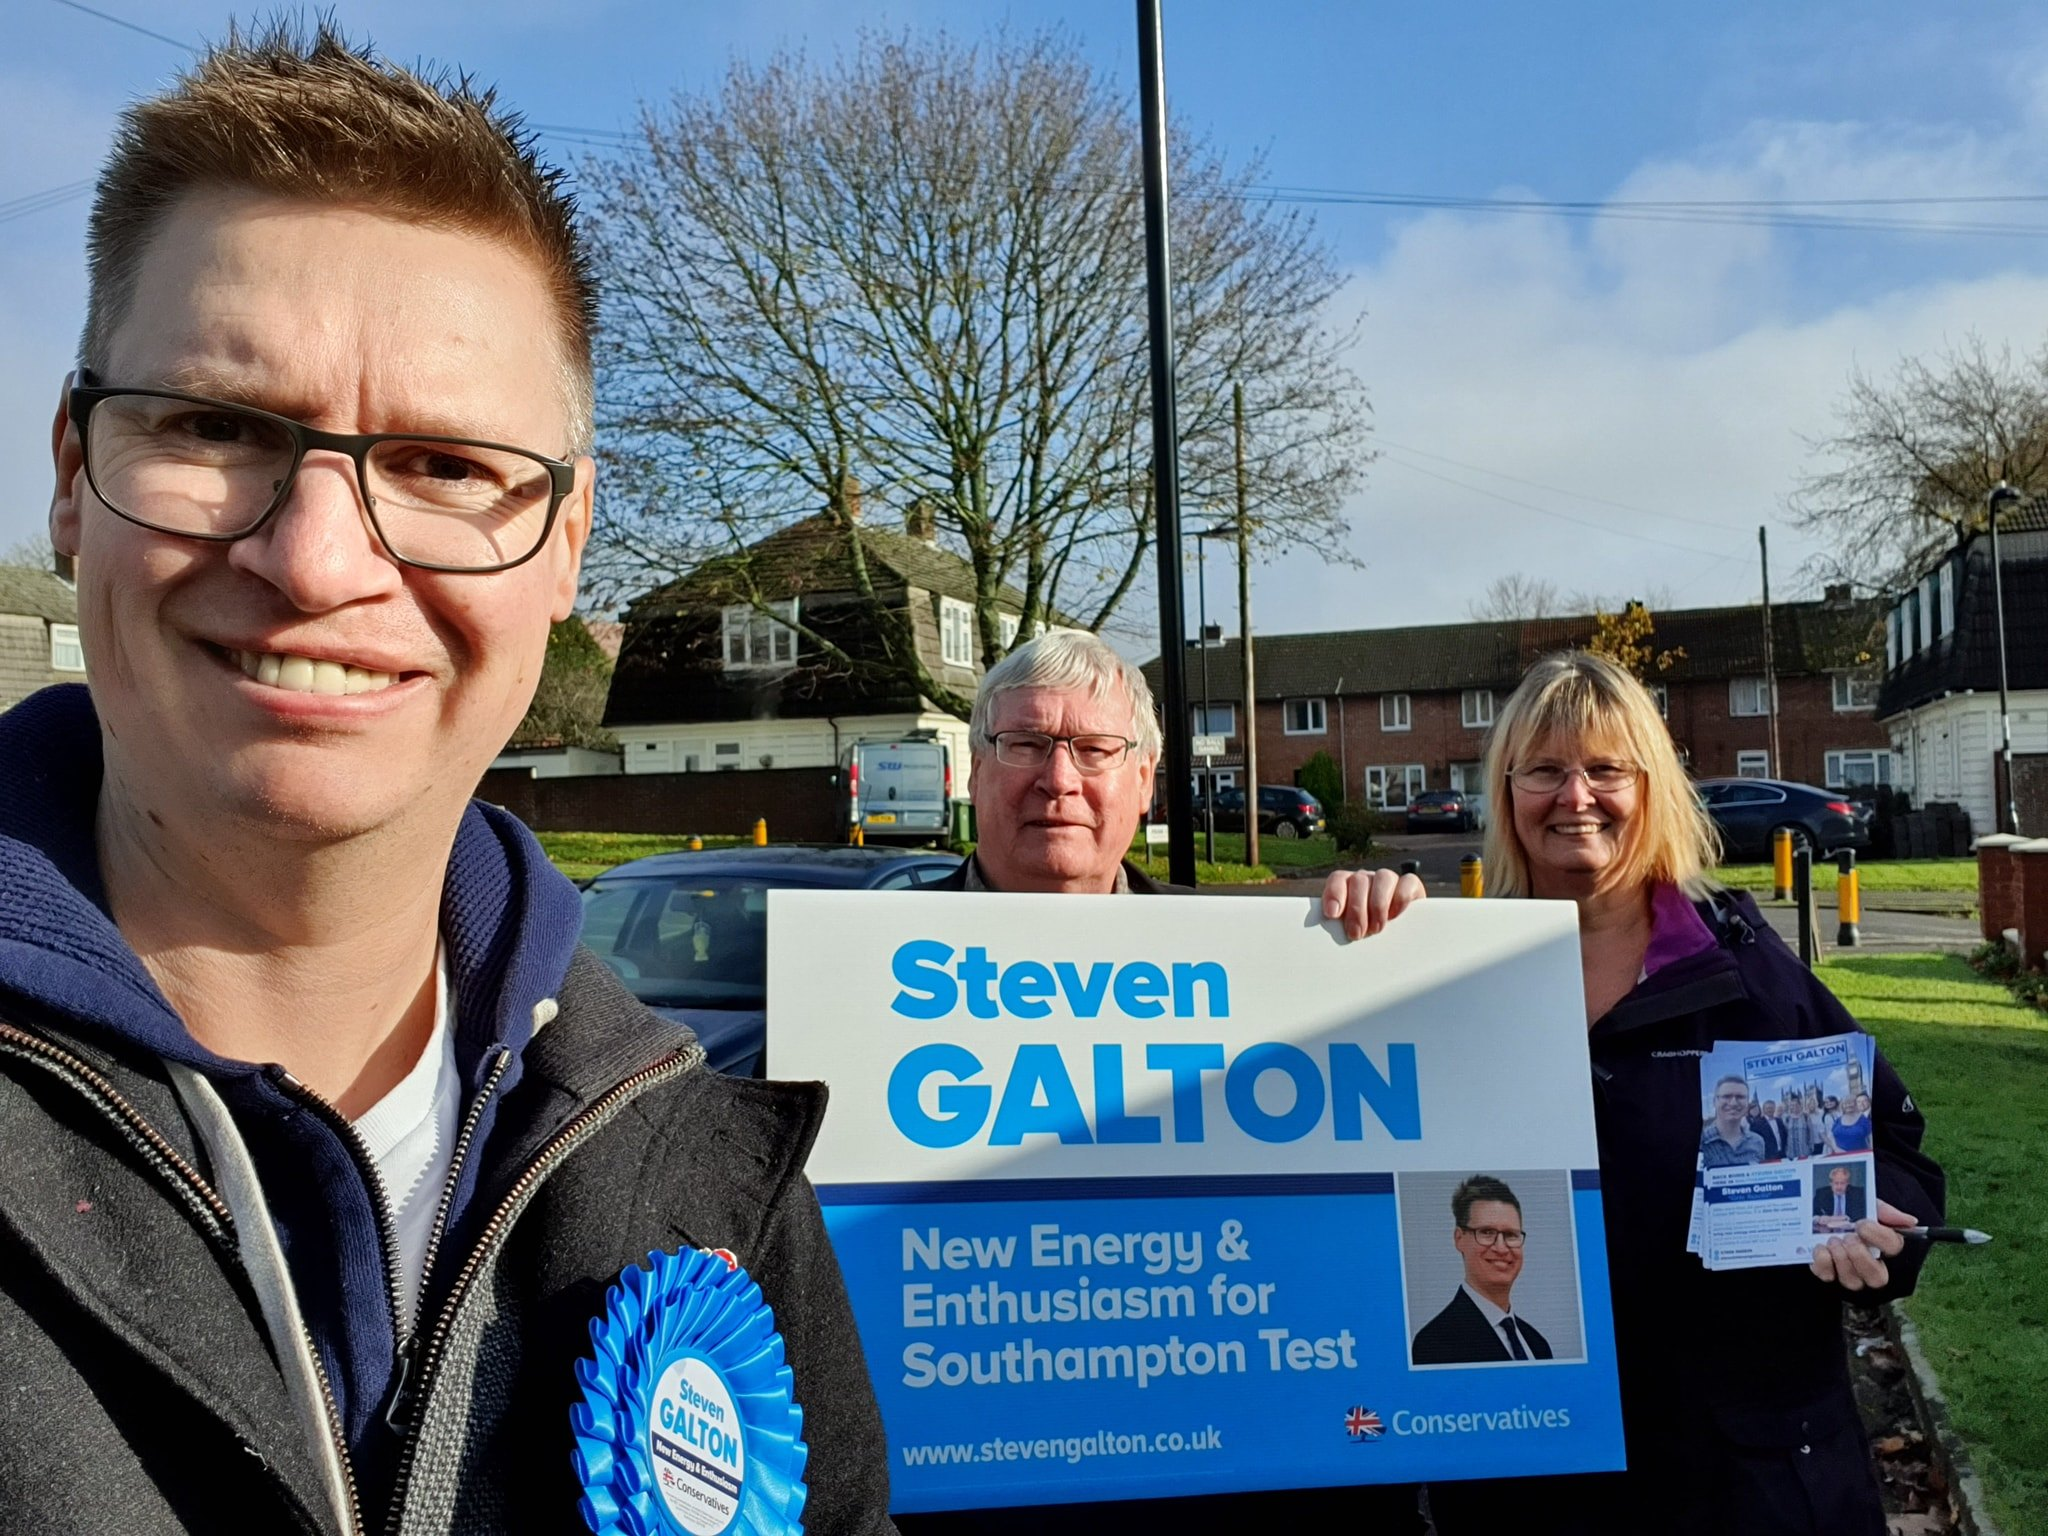 Steven Galton in Millbrook Ward, Southampton Test